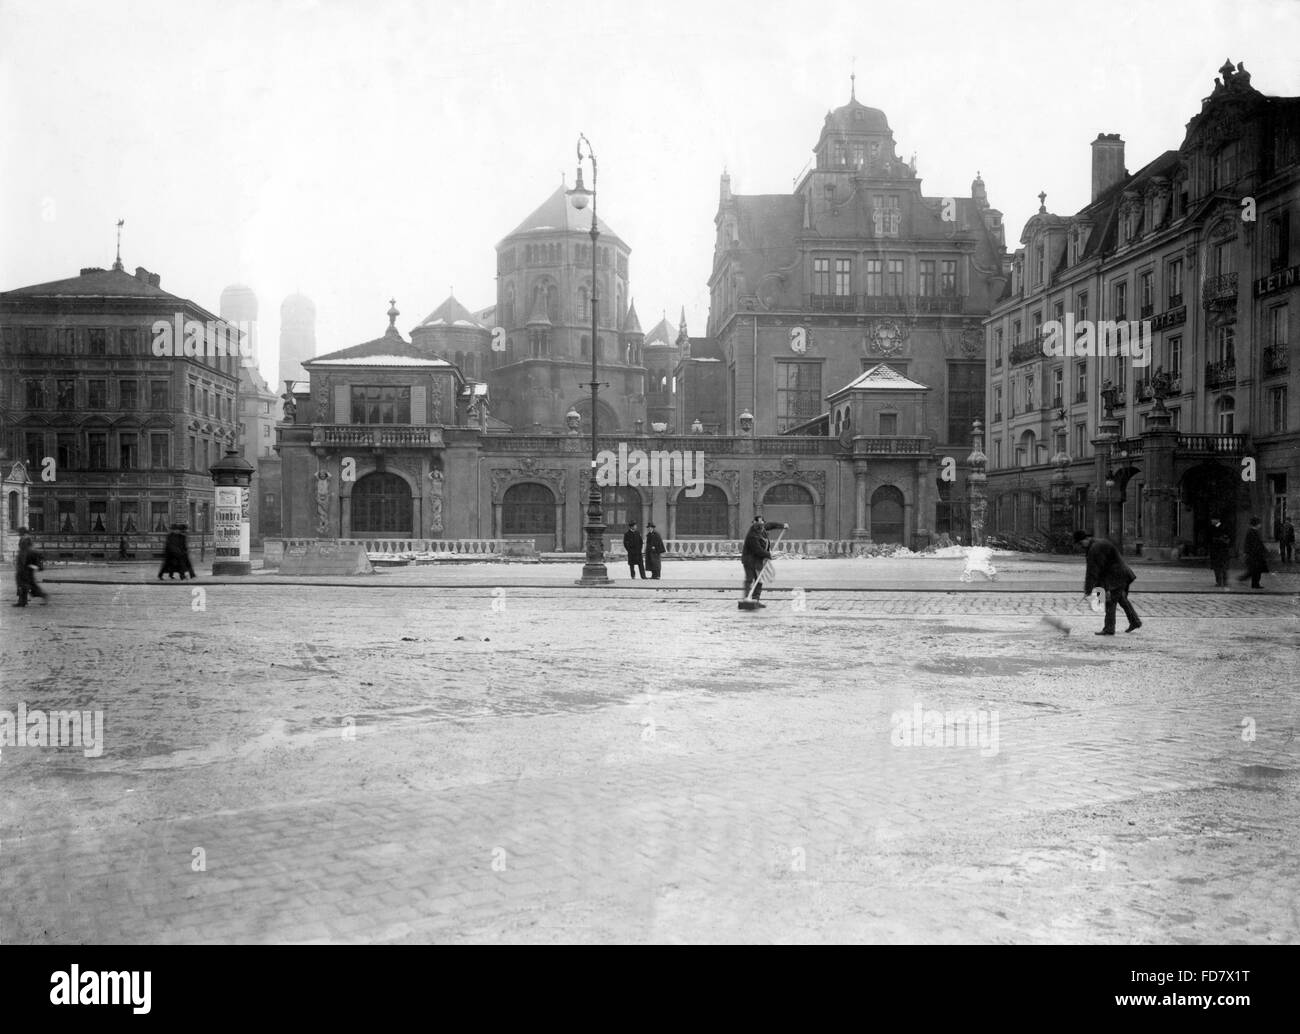 The Old Synagogue and the Kuenstlerhaus in Munich around 1900 - Stock Image